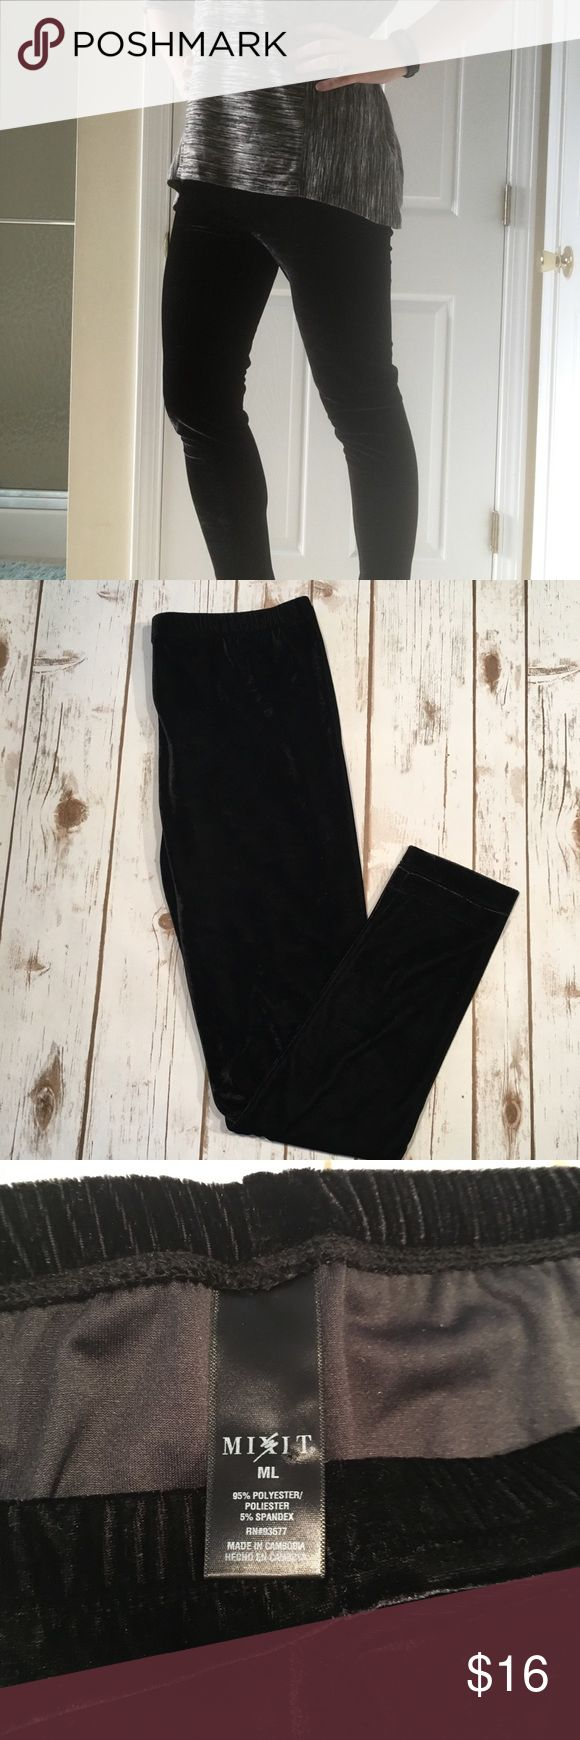 """{Velvet} Skinny Leg High Wasted Pants Like new!  Awesome high wasted velvet pants perfect for the cooler weather!  Size Medium Long, but I am only 5'4"""" and they fit me well, please see measurements.  Skinny leg.   Rise ~10.5"""" Inseam~26.5"""" Ankle laid flat~5"""" Mixit Pants Skinny"""